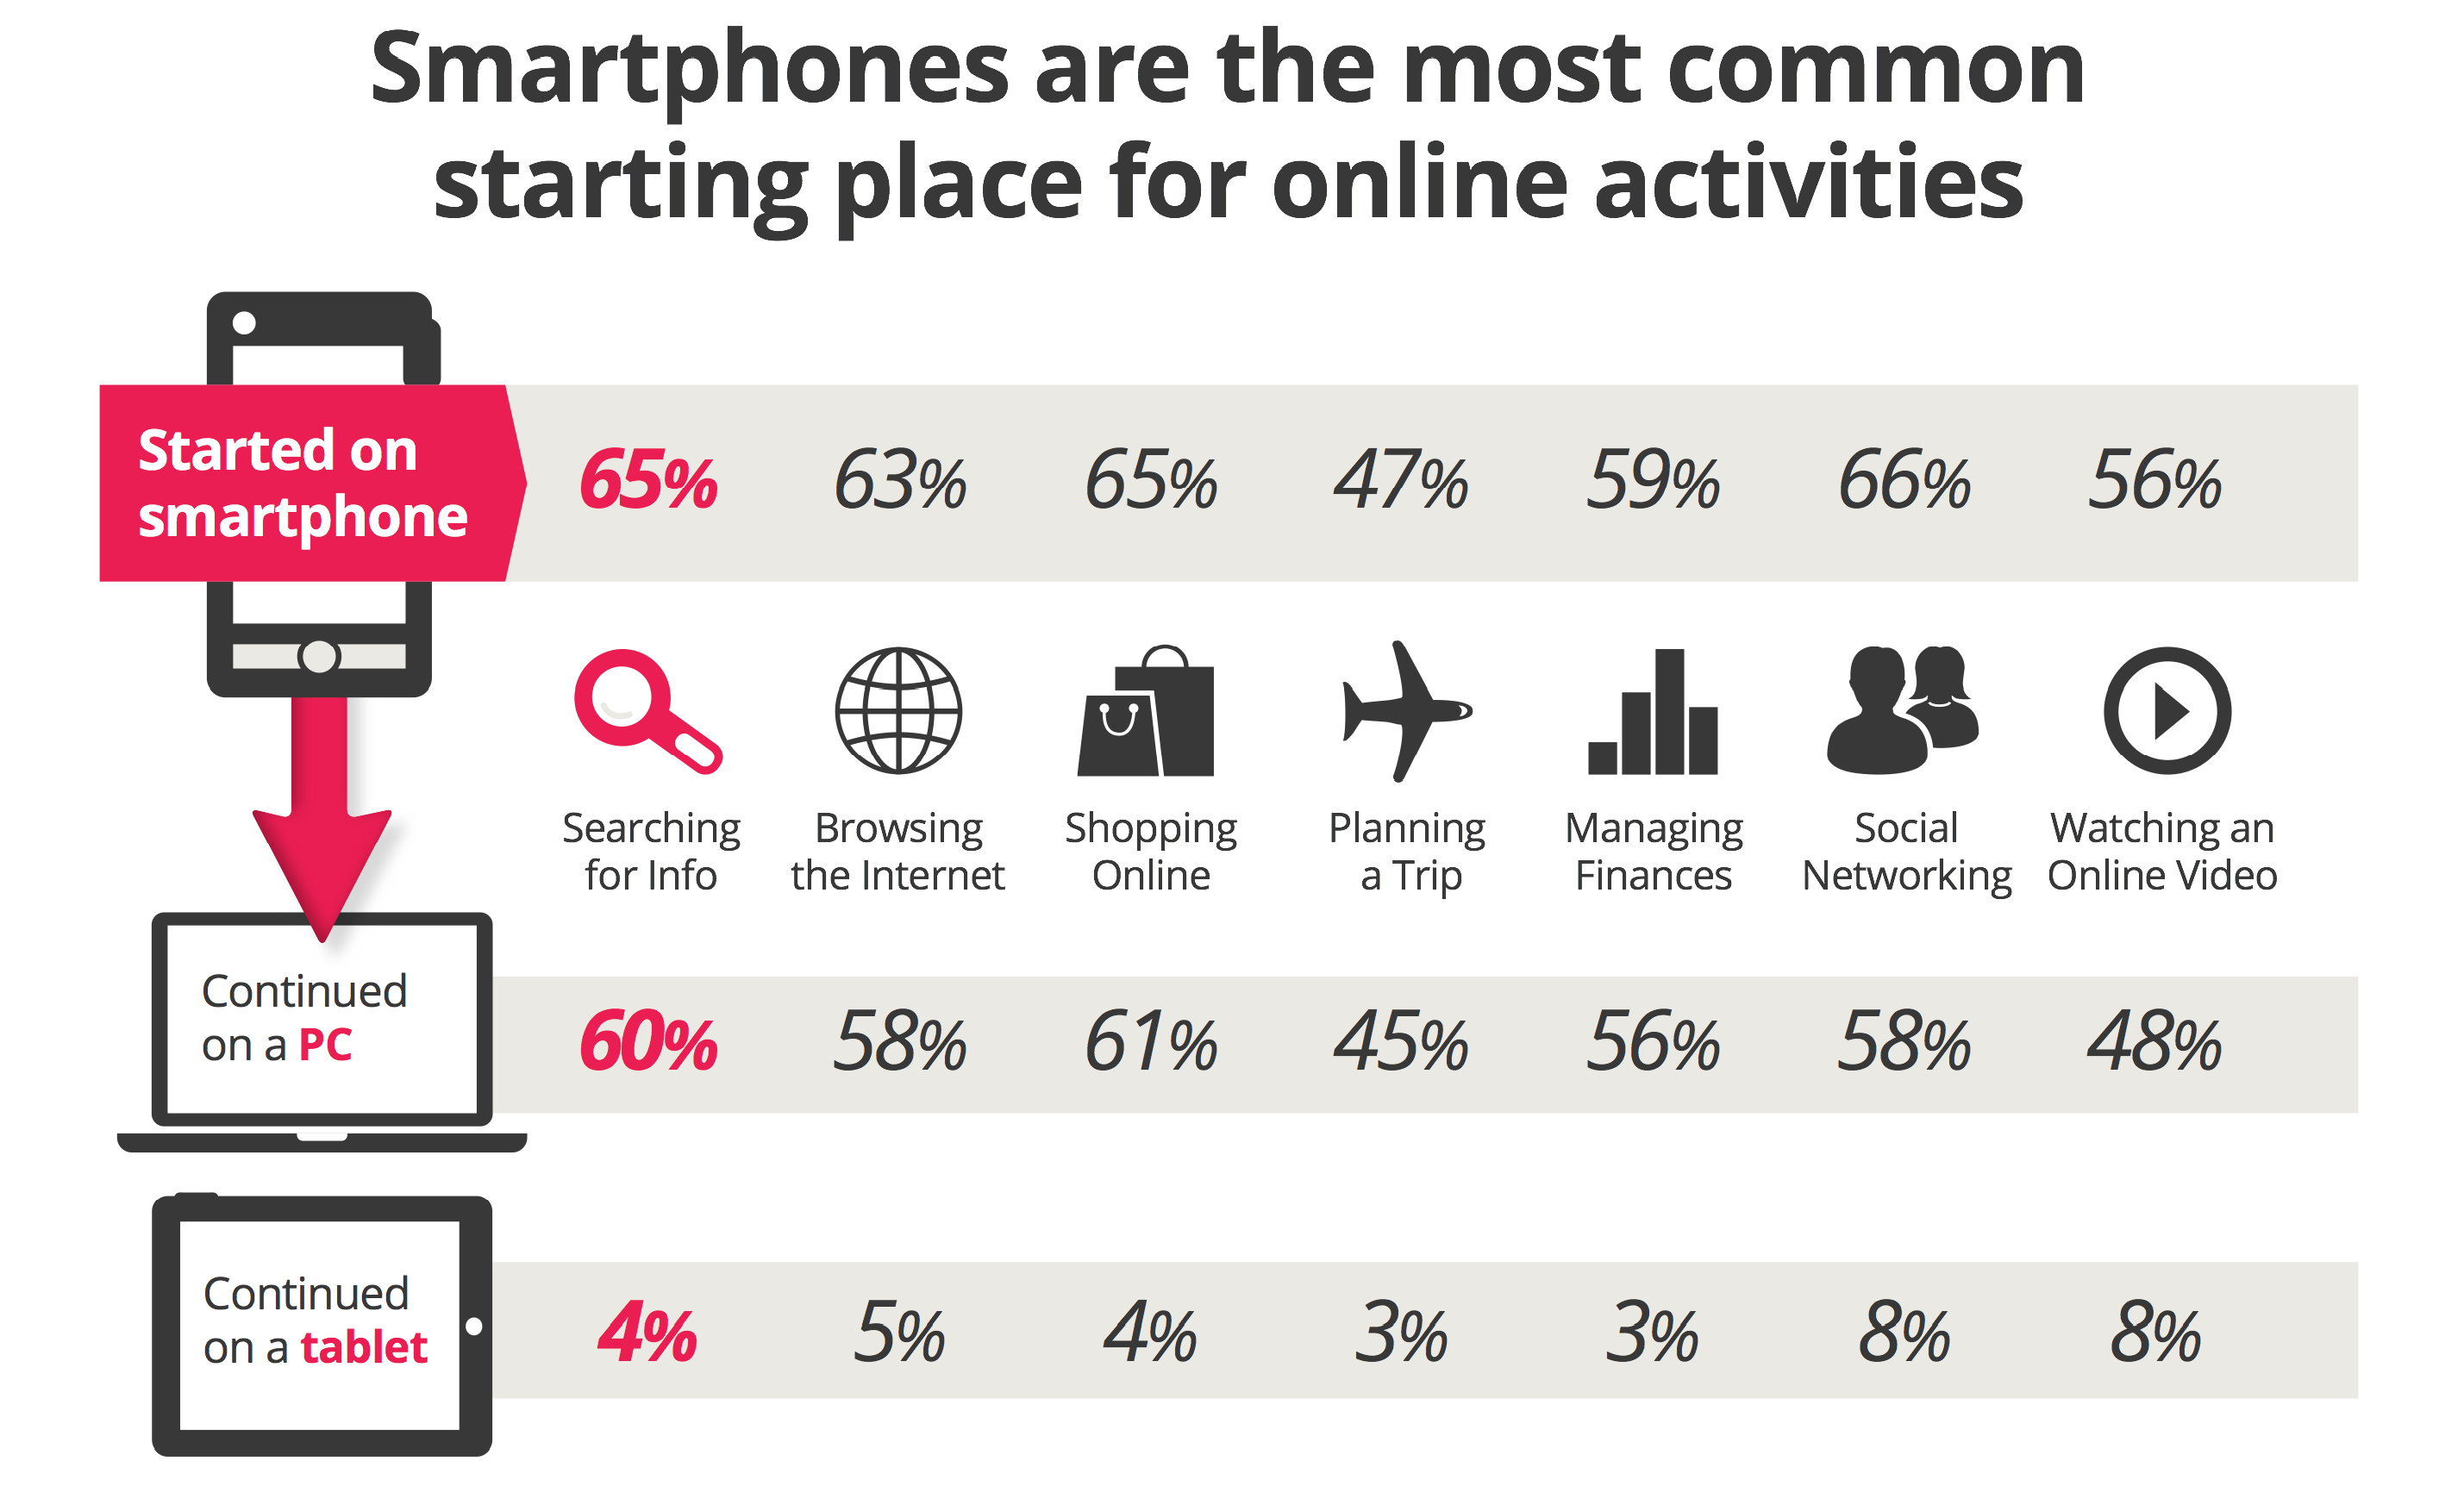 Smartphones are the most common starting place for online activities